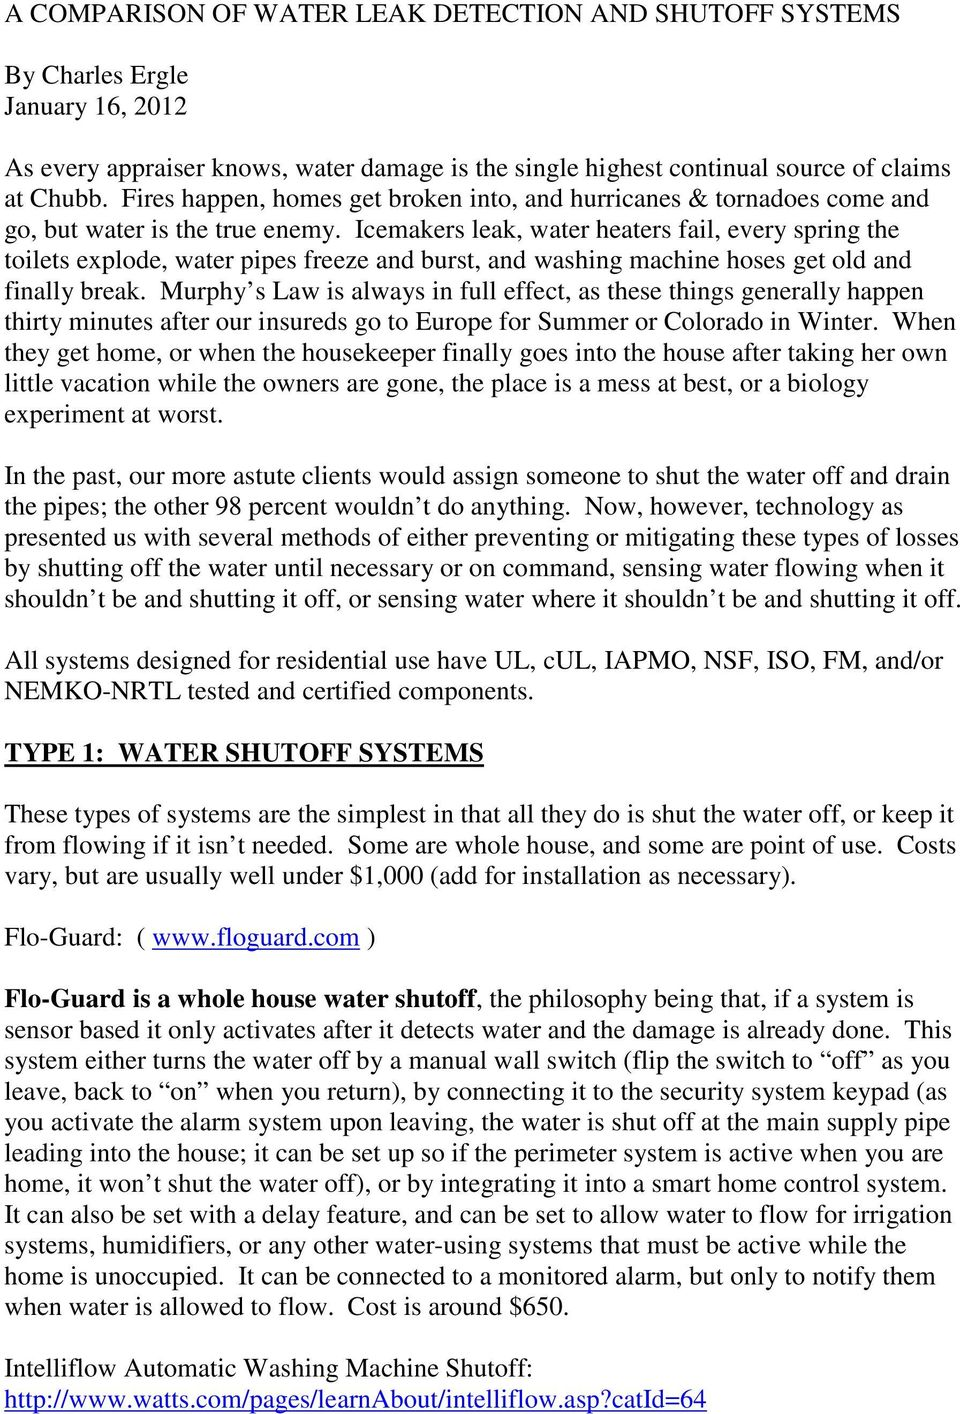 a comparison of water leak detection and shutoff systems pdf icemakers leak water heaters fail every spring the toilets explode water pipes ze